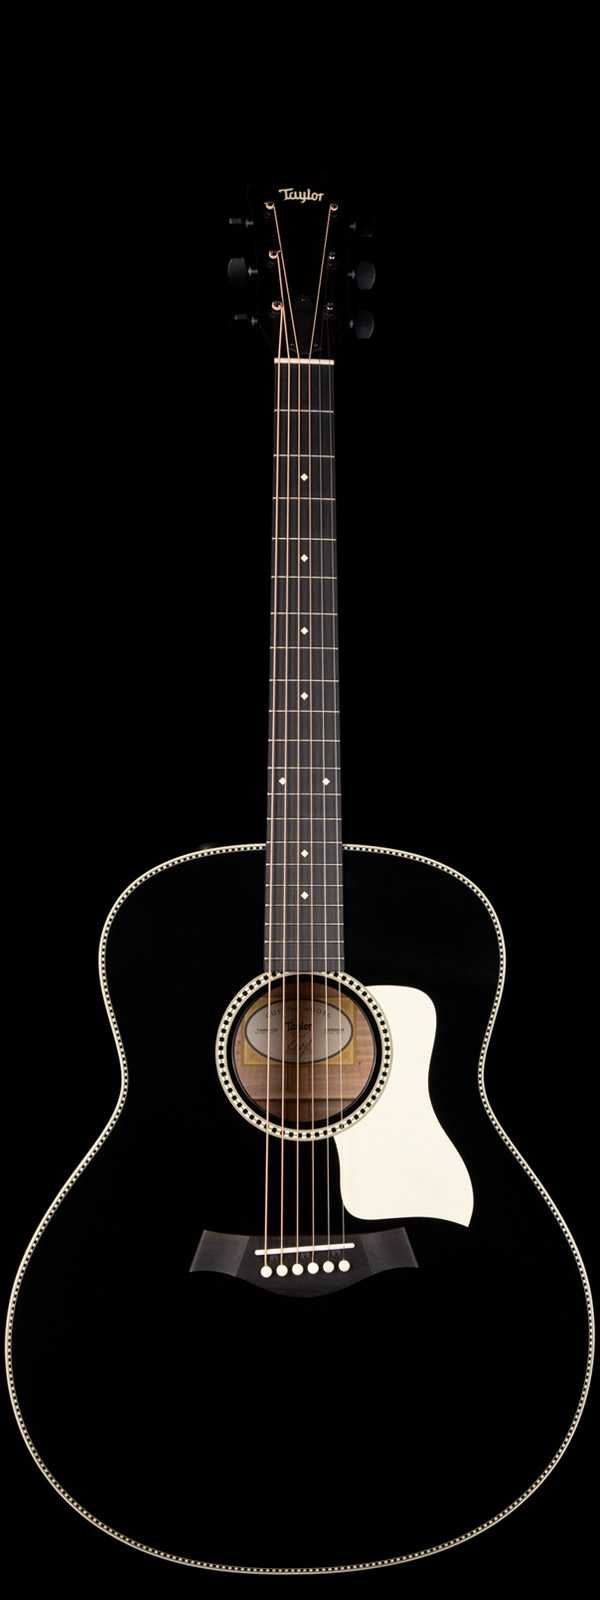 Taylor Grand Orchestra Catch 30 Acoustic Electric Black